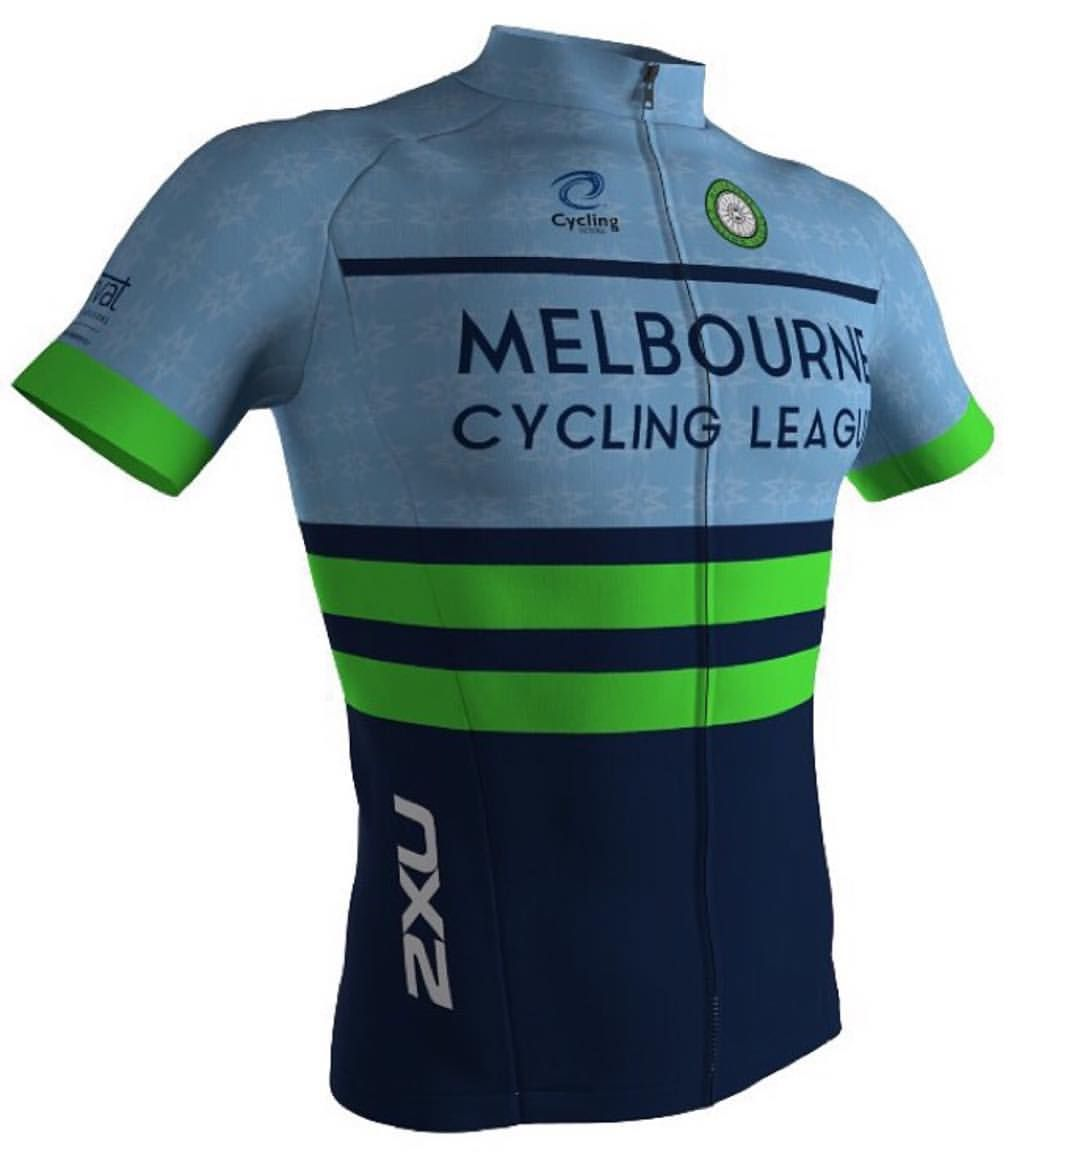 Melbourne Cycling League On Instagram Bit Of Friday Newkitday For Ya Ll Our 2016 Kit Shop Opens Early N Cycling Outfit Cycling Jersey Design Cycling Shirt